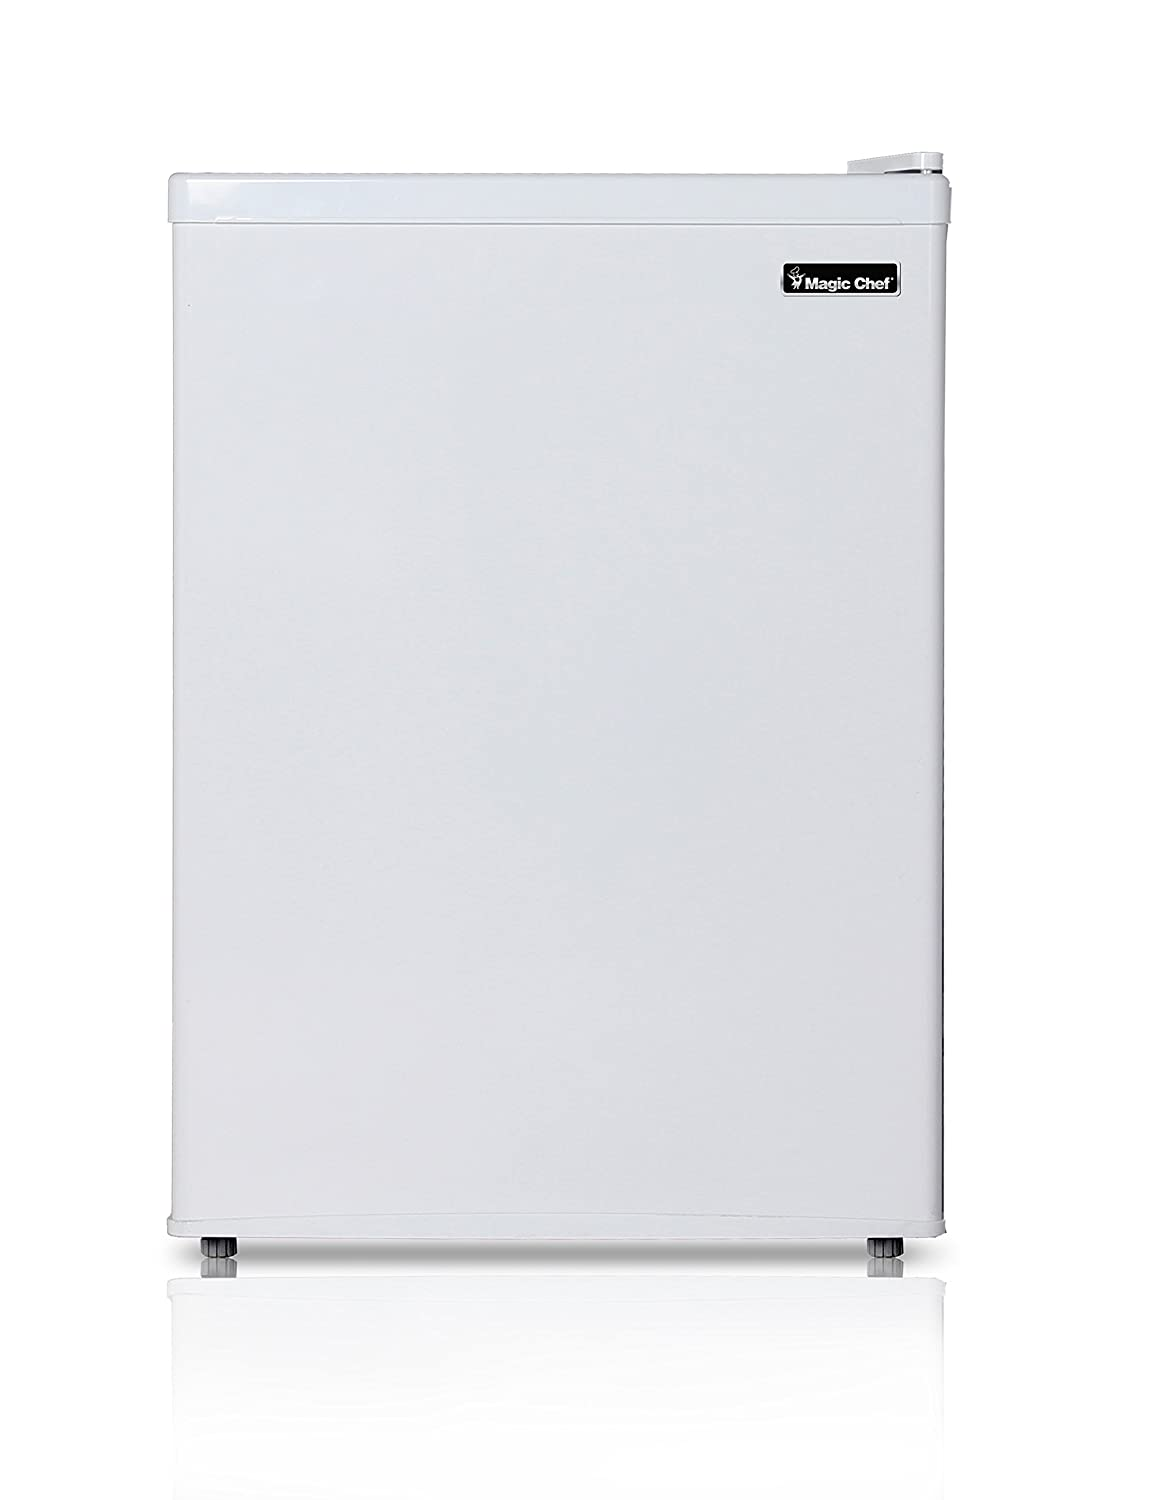 Magic Chef MCBR240W1 Refrigerator, 2.4 cu.ft, White